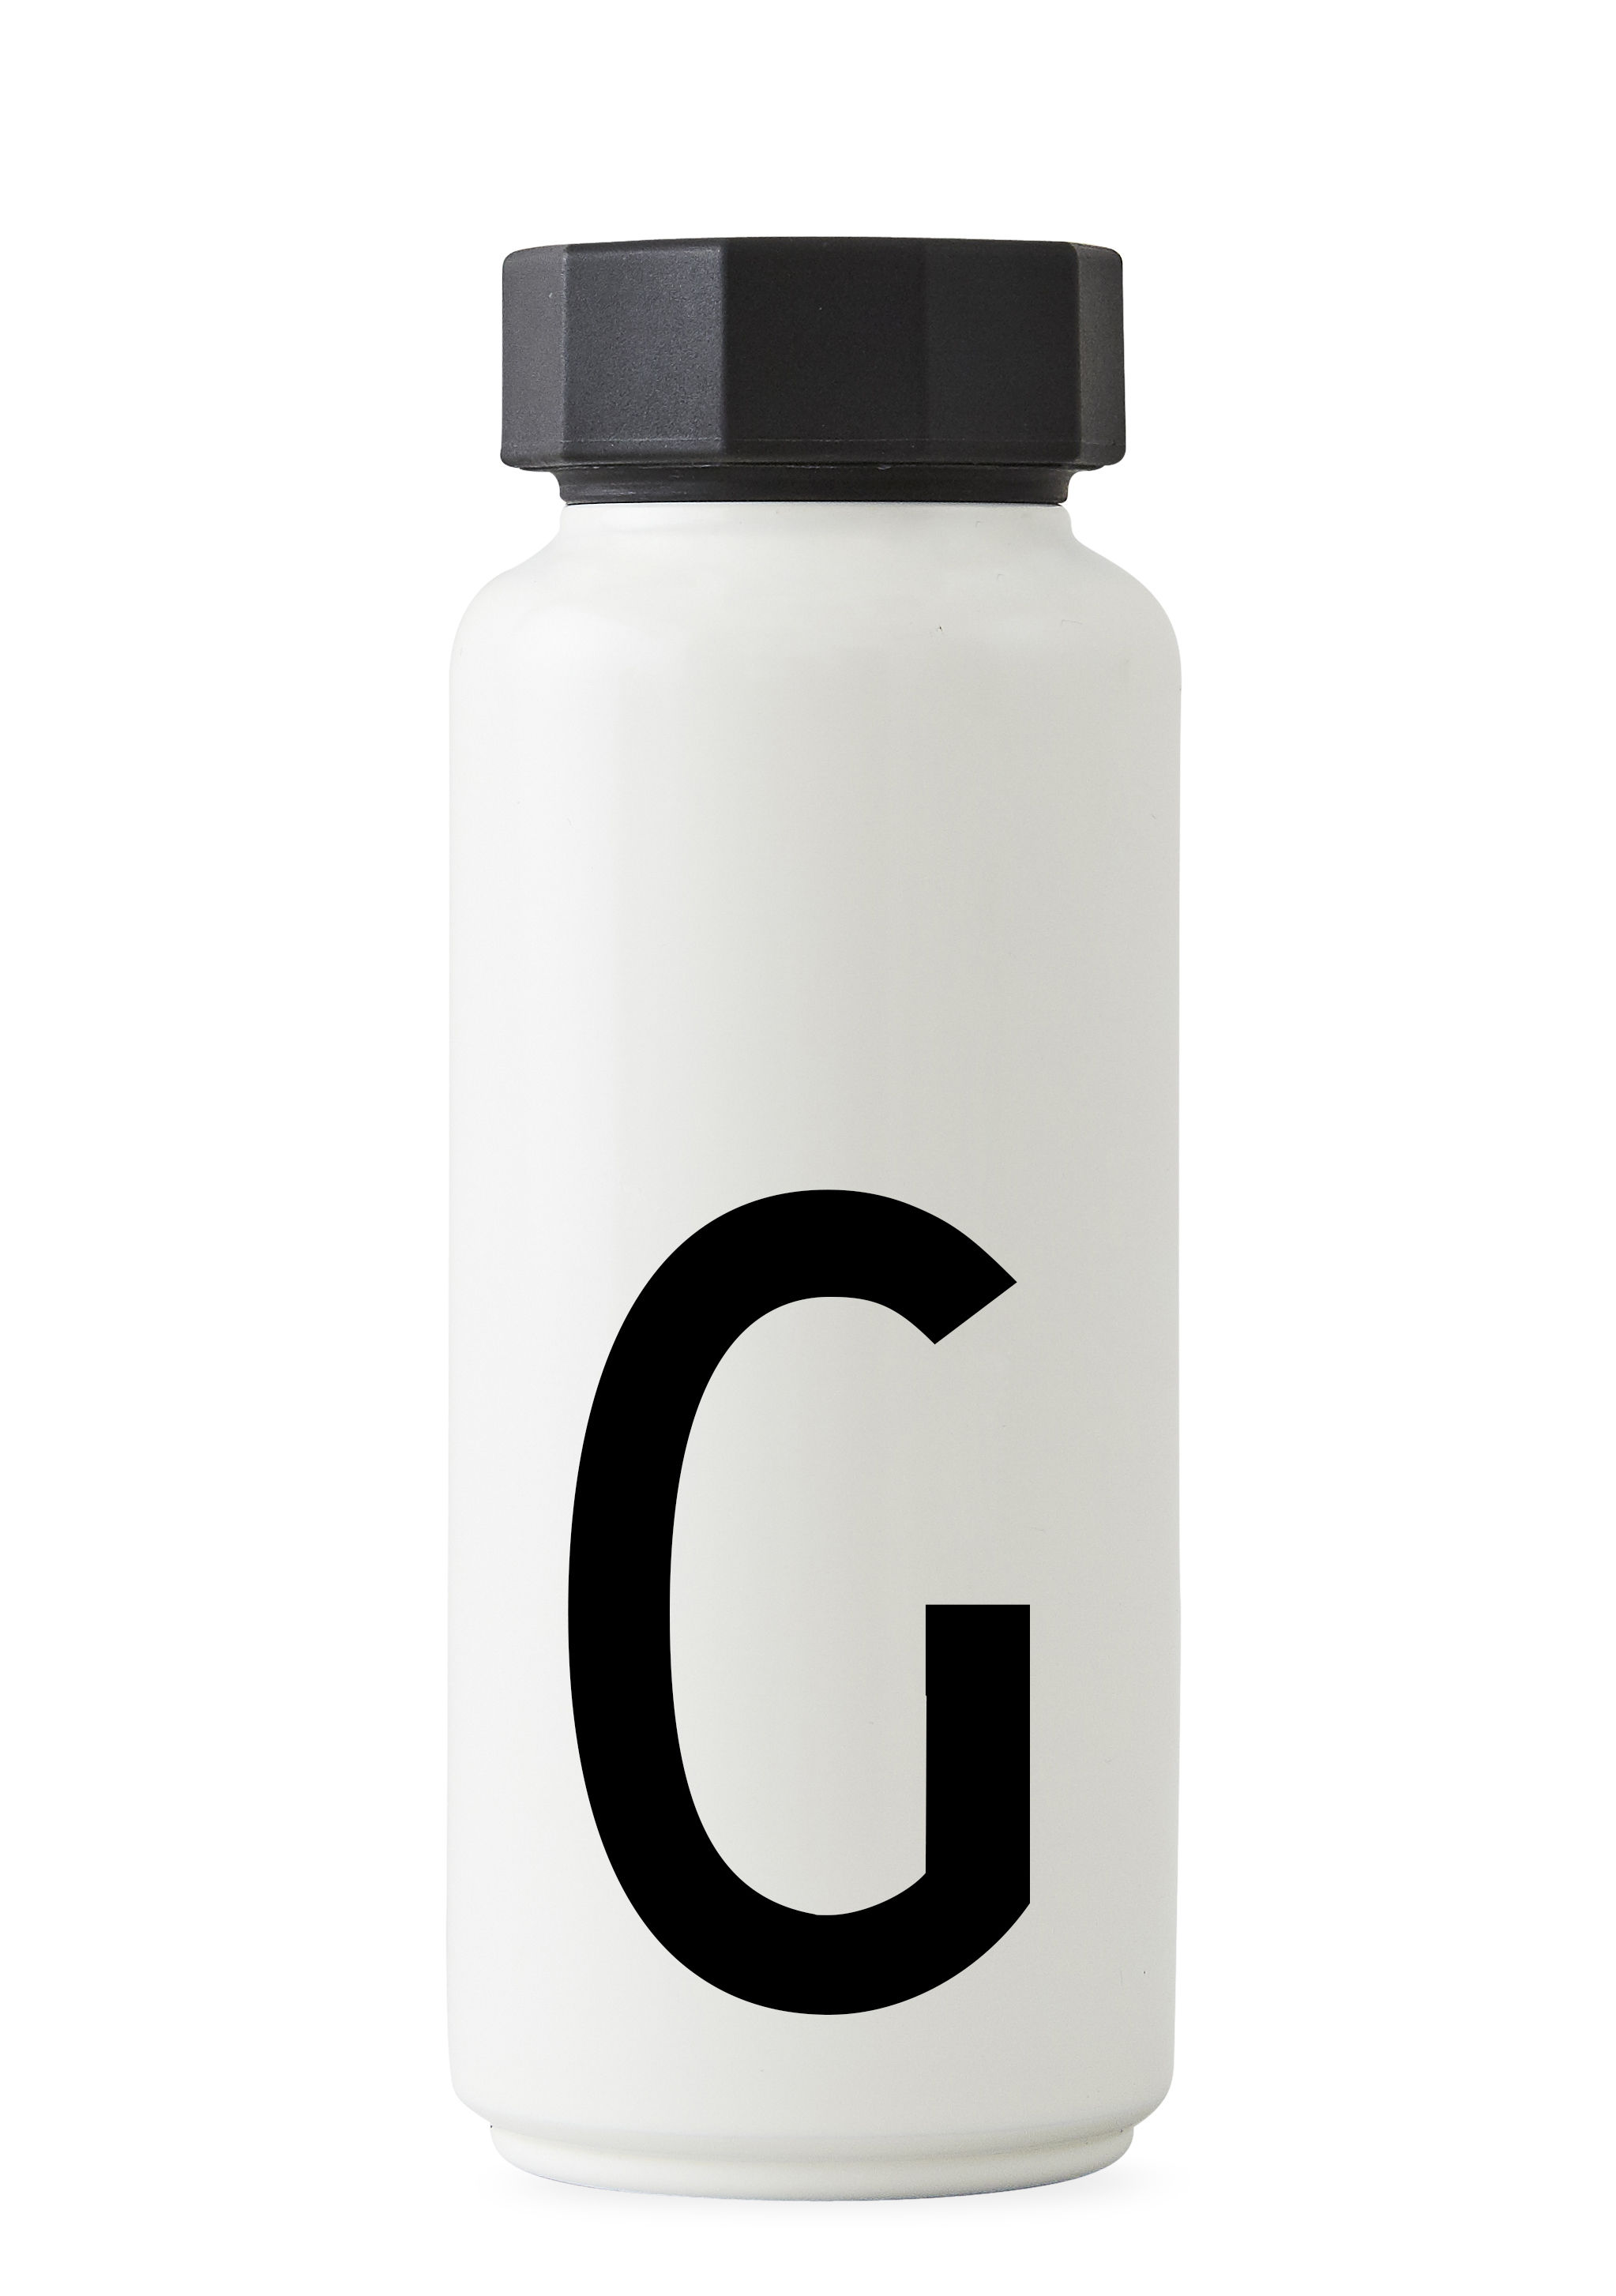 Tableware - Water Carafes & Wine Decanters - Arne Jacobsen Insulated bottle - / 500 ml - Letter G by Design Letters - White / Letter G - Polypropylene, Stainless steel